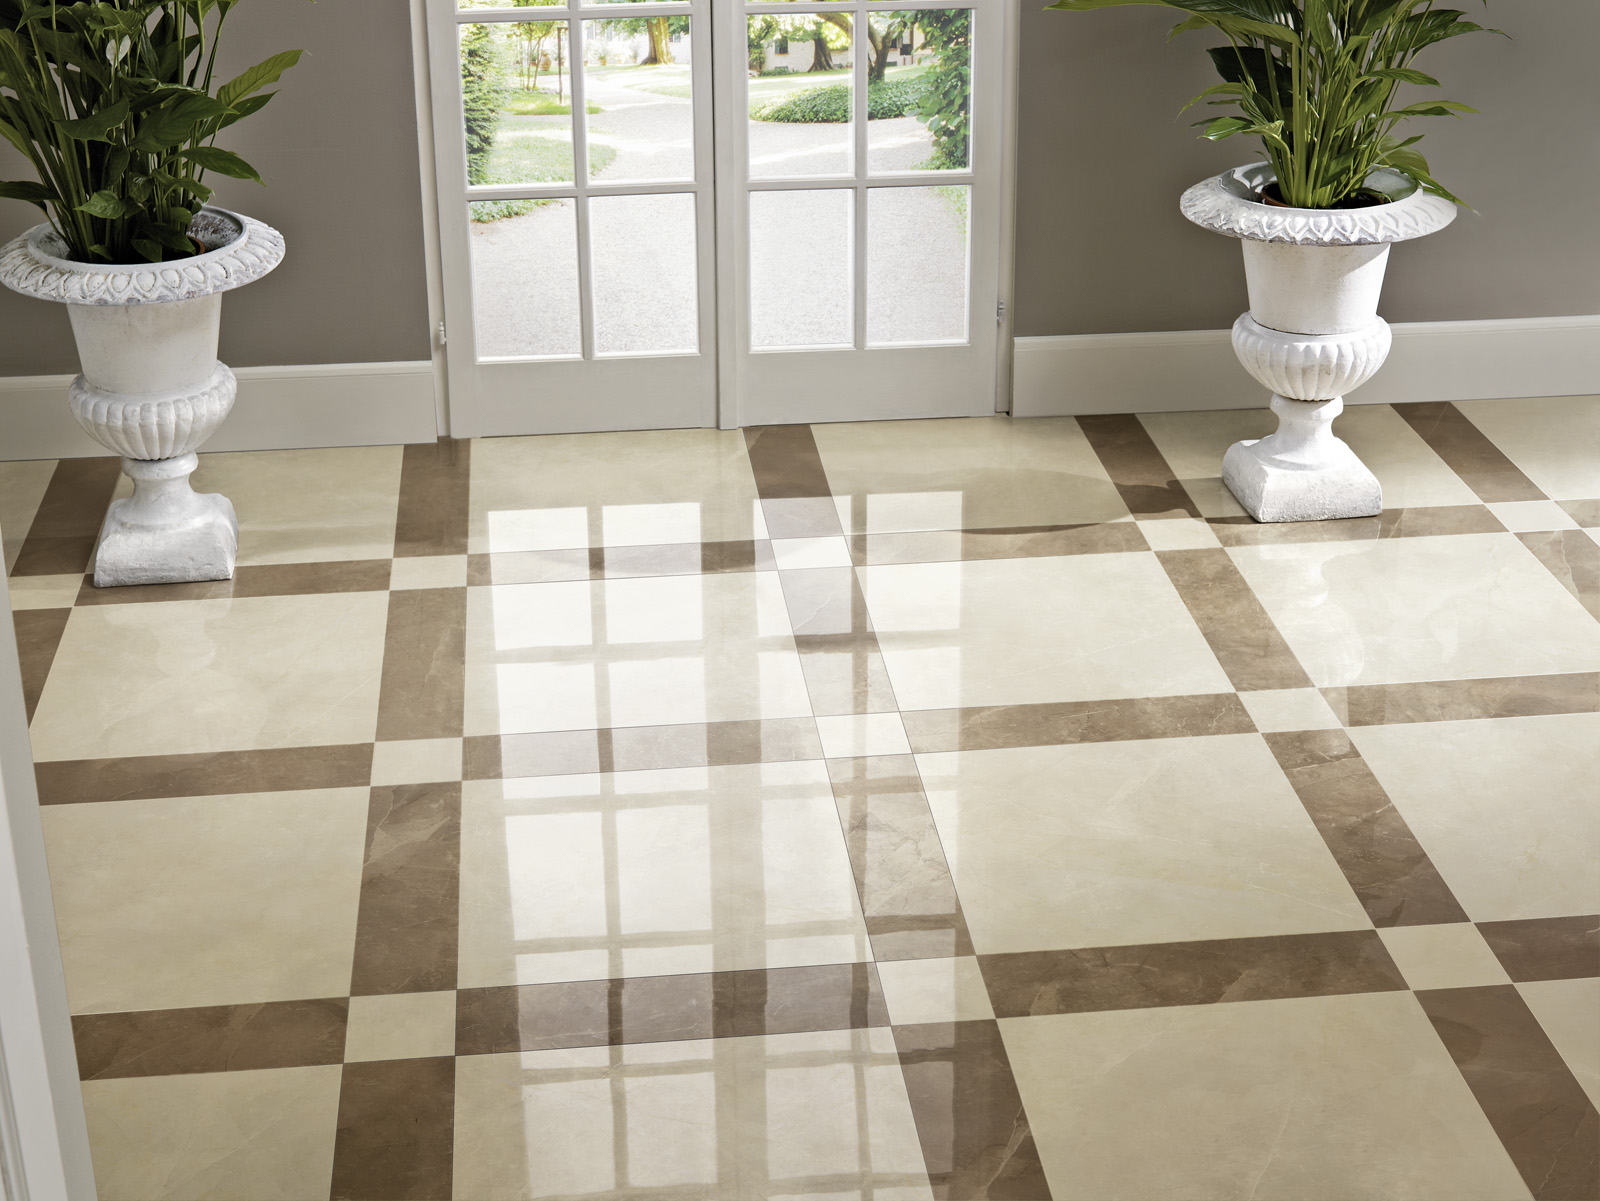 Carrelage imitation marbre voir les collections marazzi for Carrelage de marbre